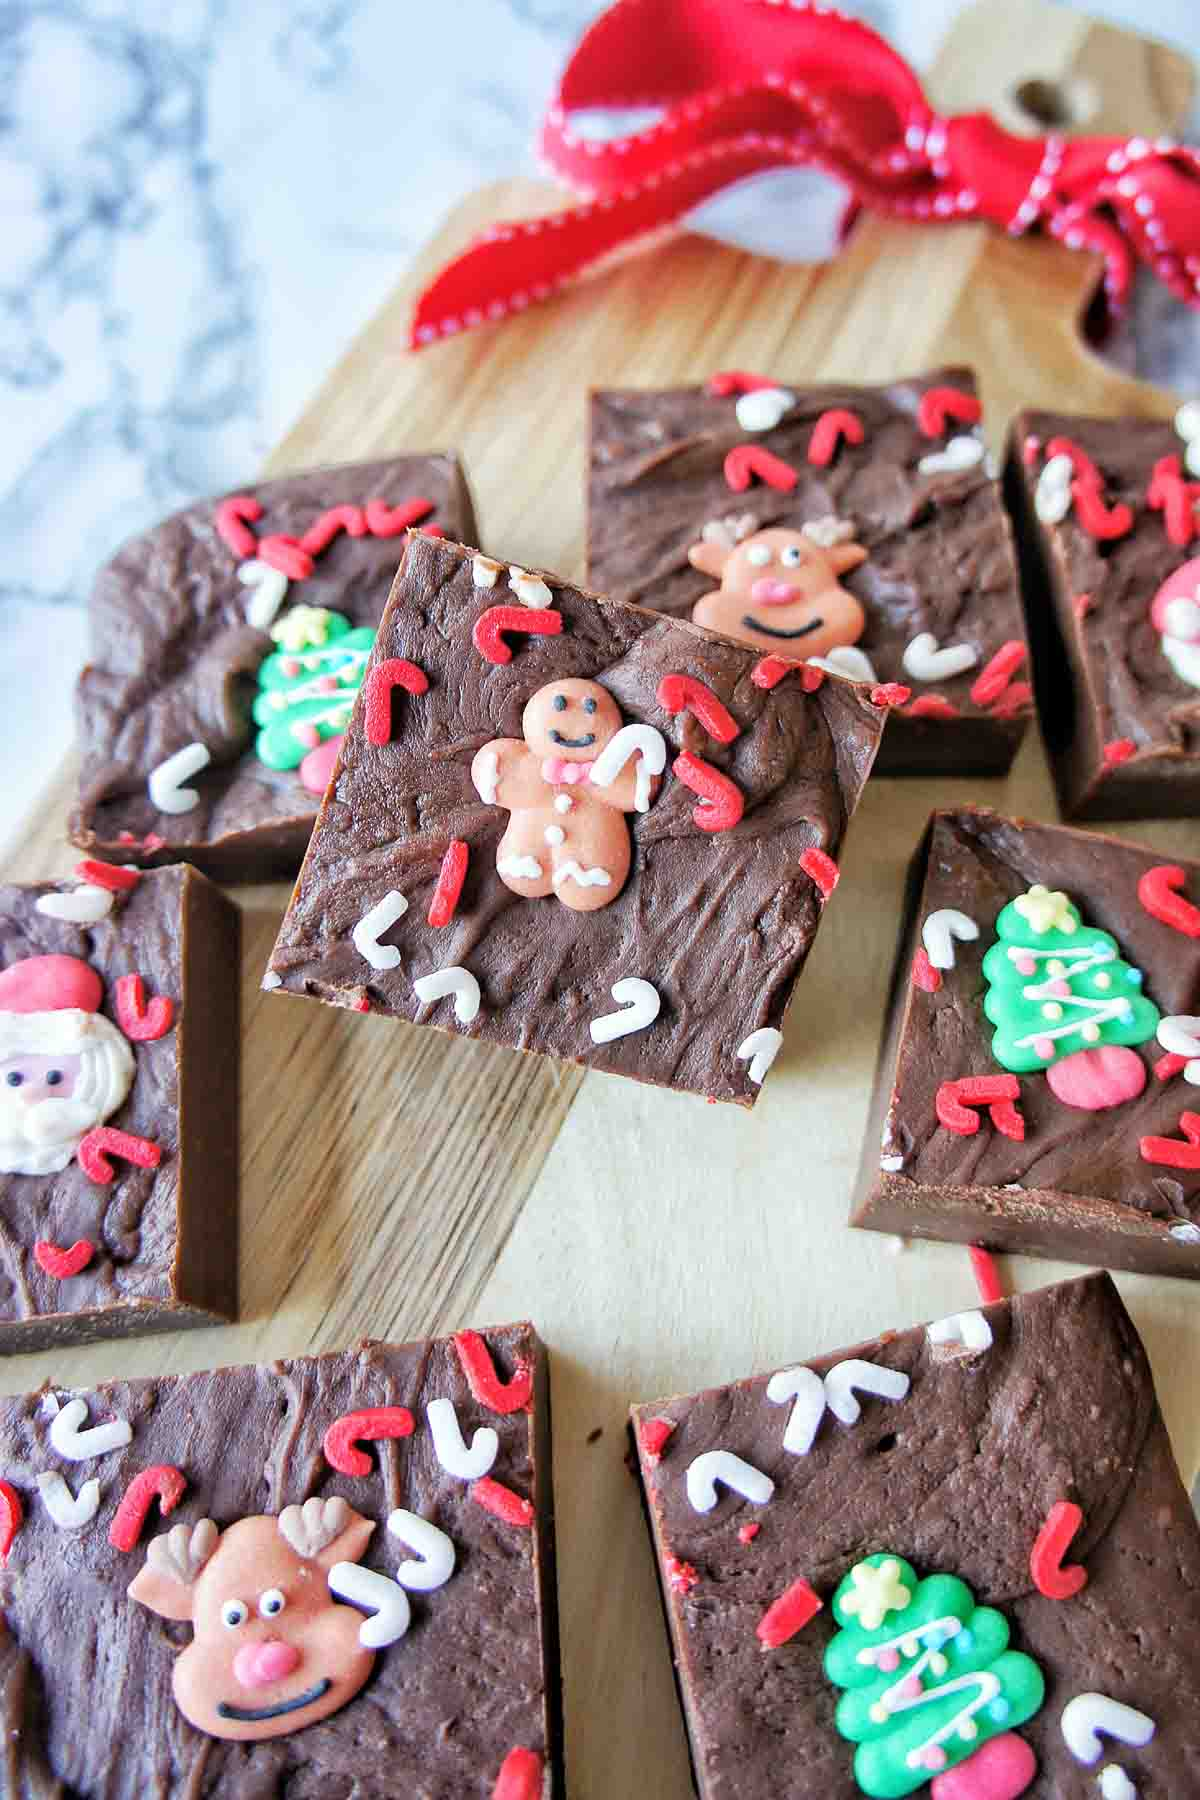 Slow Cooker Christmas Fudge cut into pieces on a chopping board with red ribbon in the background